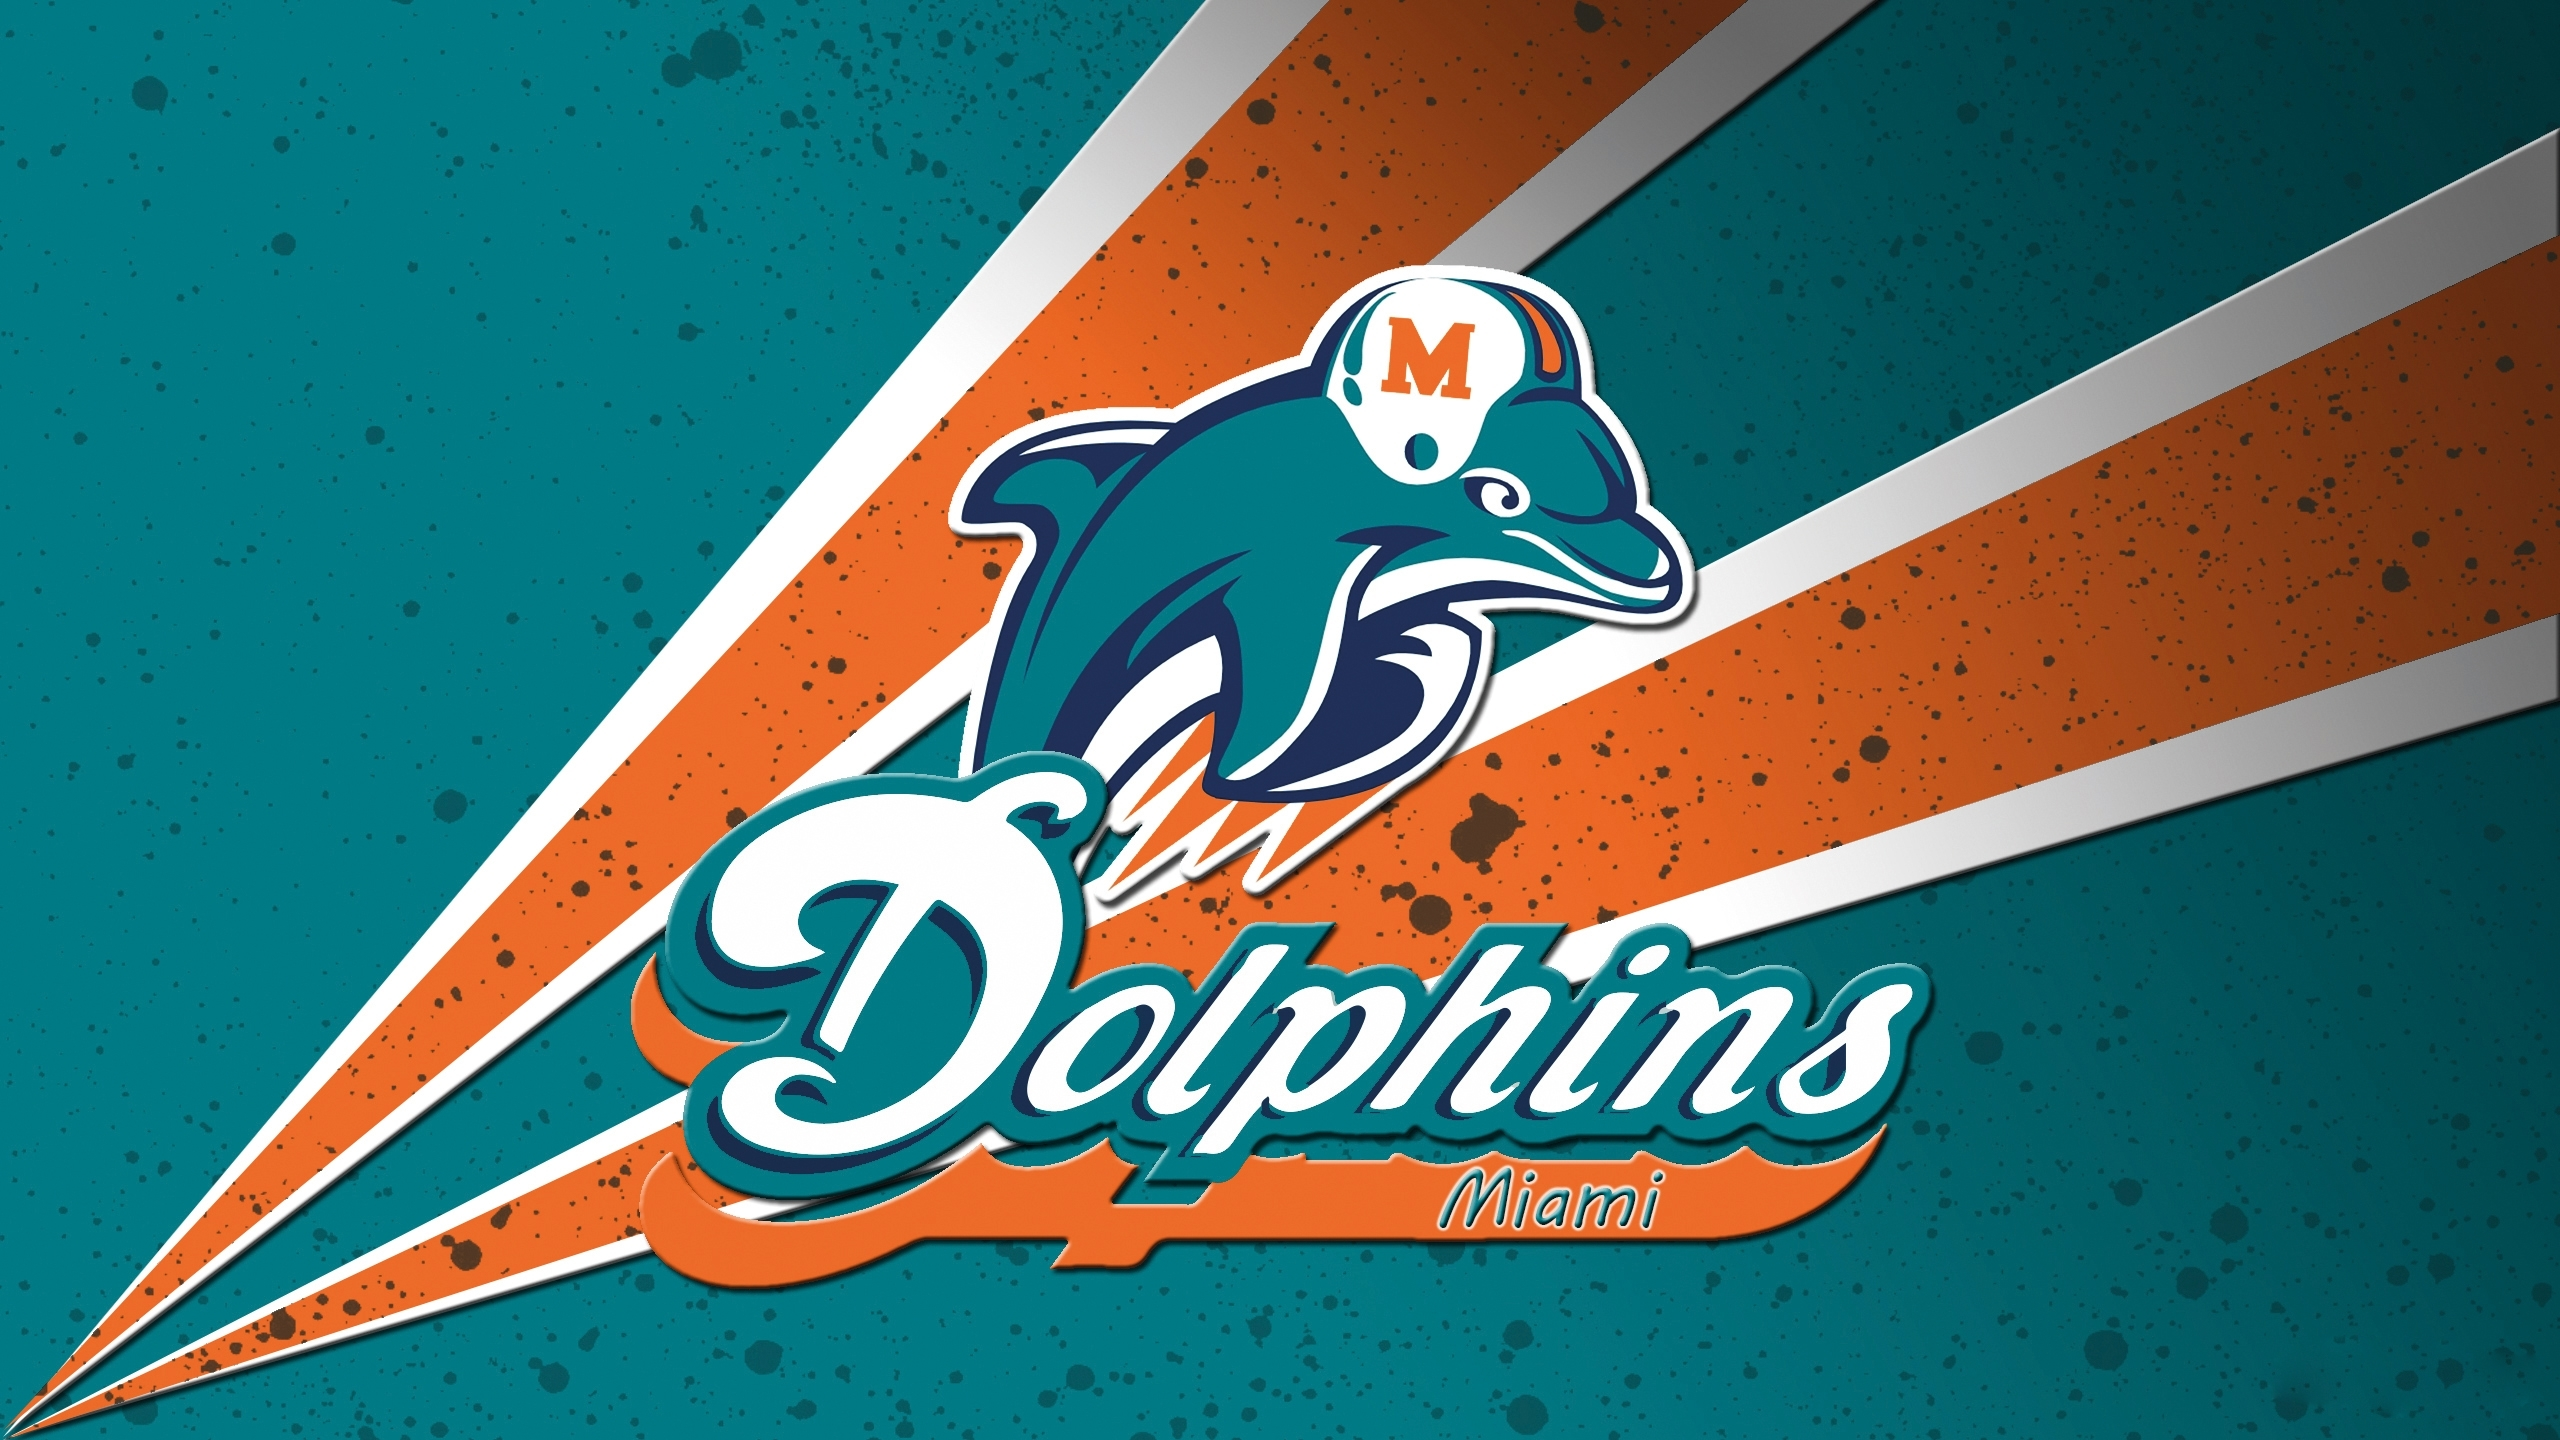 miami dolphins logo wallpaper - page 2 of 3 - wallpaper.wiki